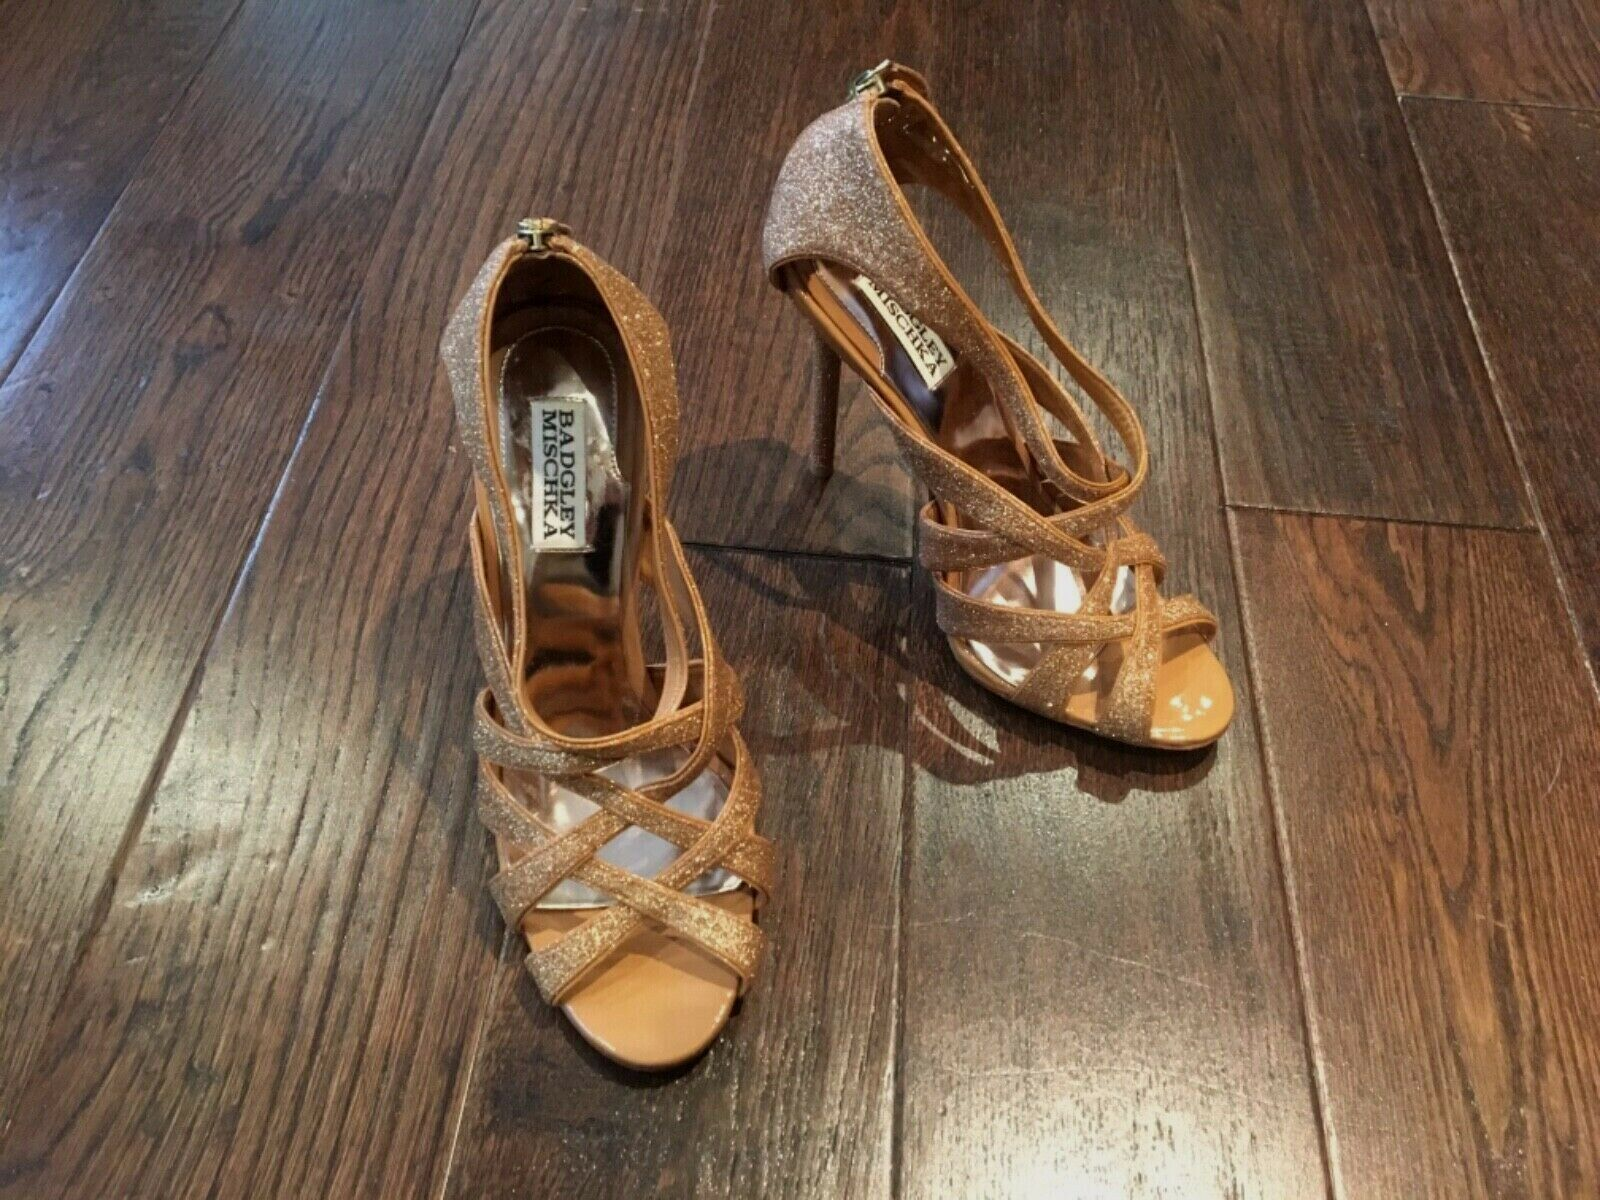 Badgley Mischka high heel shoes, new without tags,